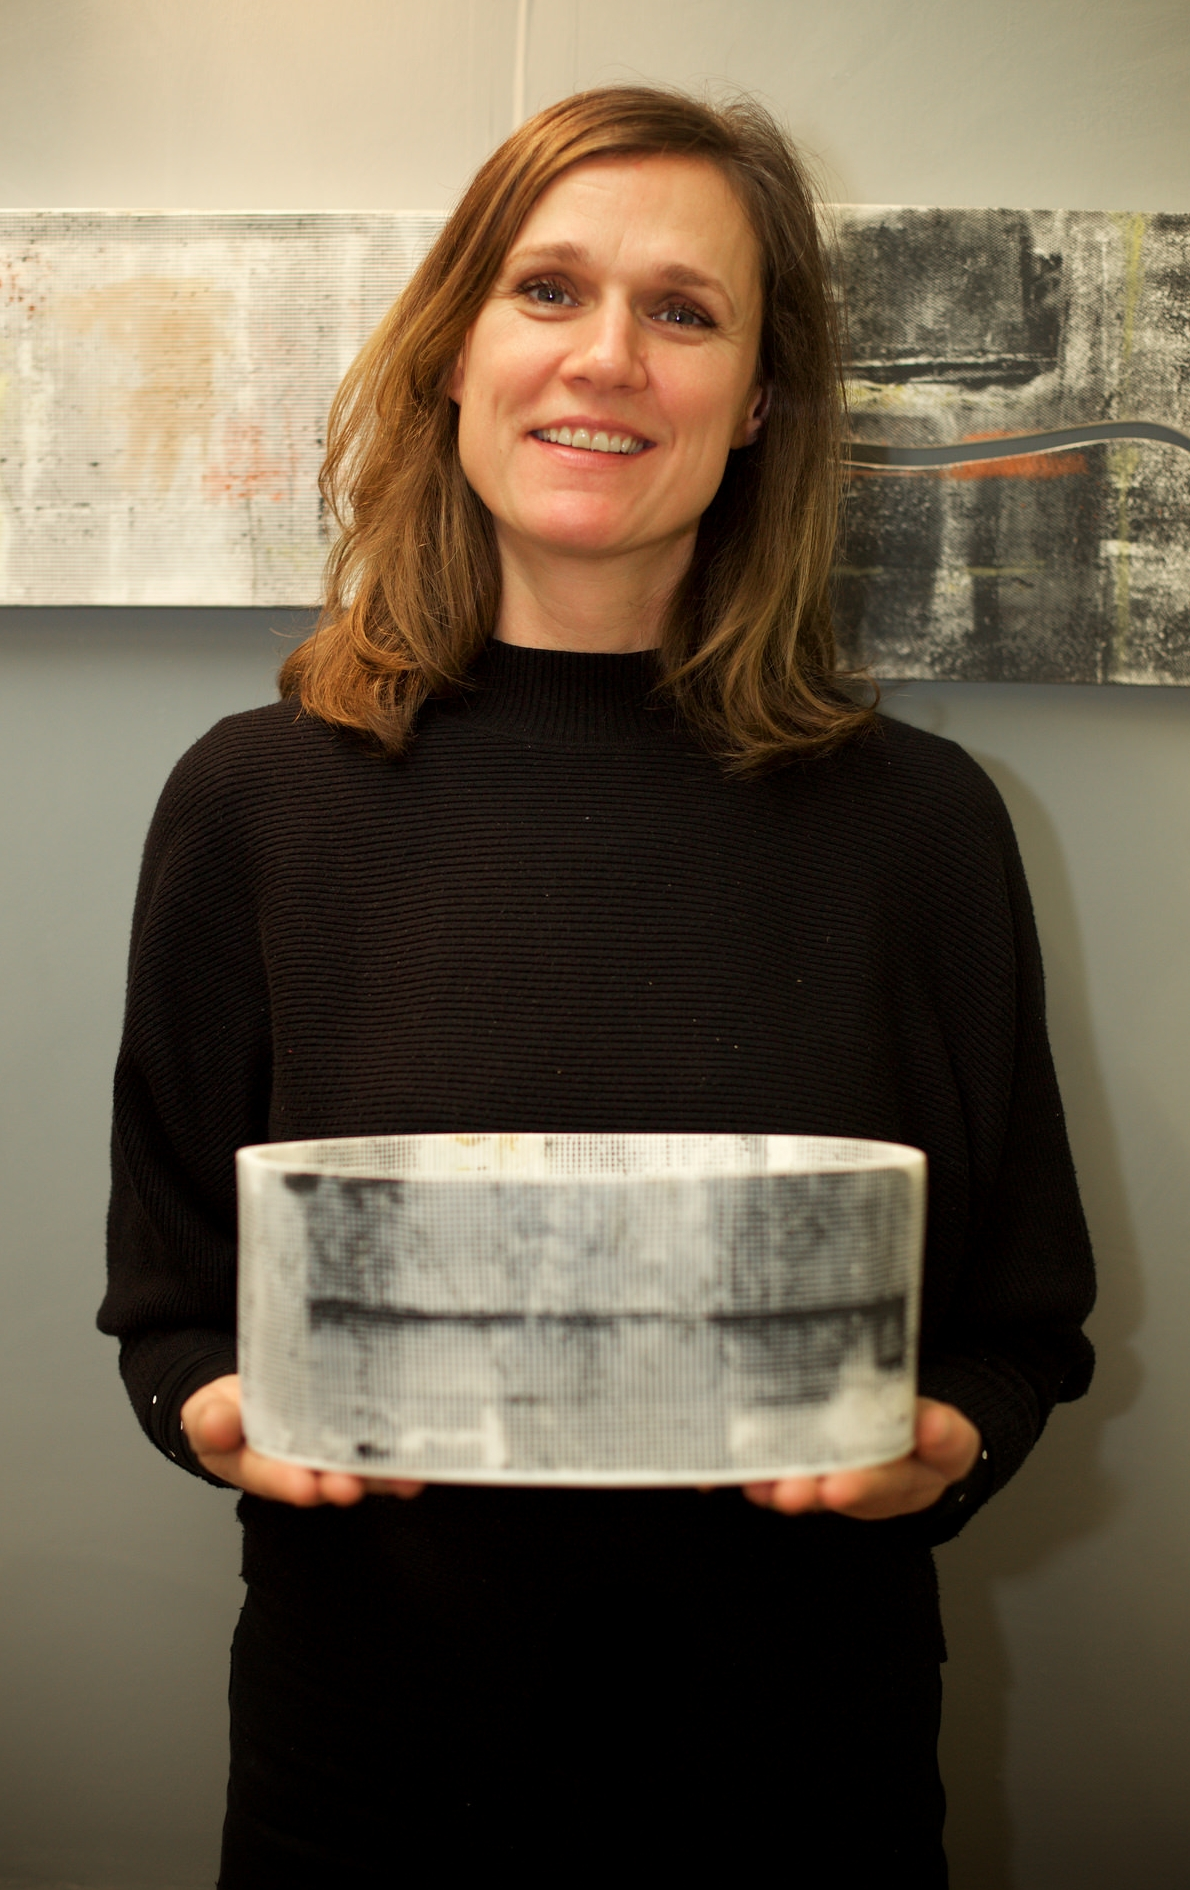 Jamie Trounce  is the regular photographer at Cockpit Arts open studios events. He has captured me here and the very first vessel I made this year using my surfaces, movement and journey. I'm looking forward to scaling up,introducing light and a kinetic element to my ceramics in 2018.